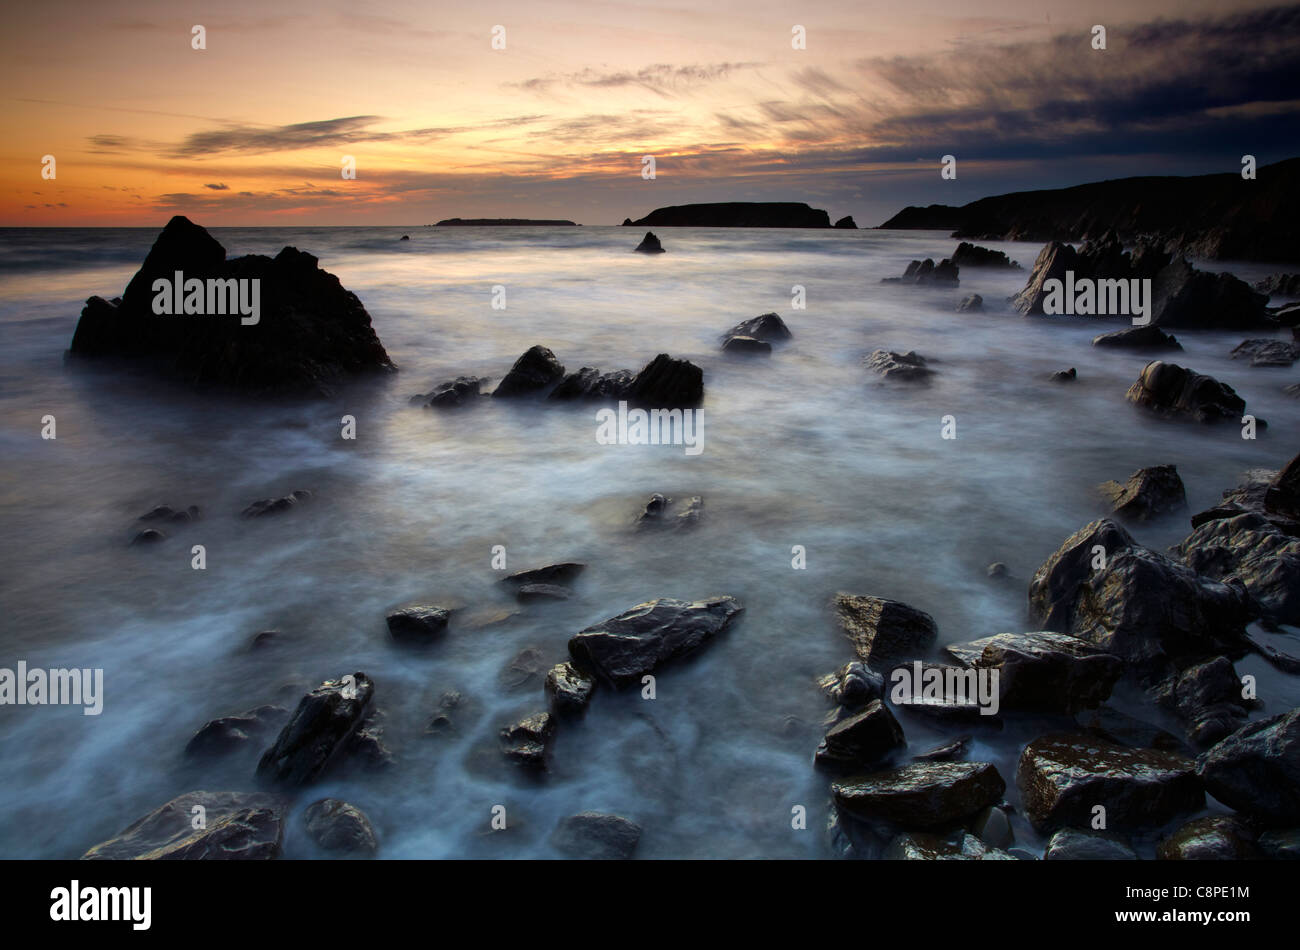 Dusk at Marloes, looking towards Gateholm and Skokholm Islands, Pembrokeshire, West Wales. - Stock Image